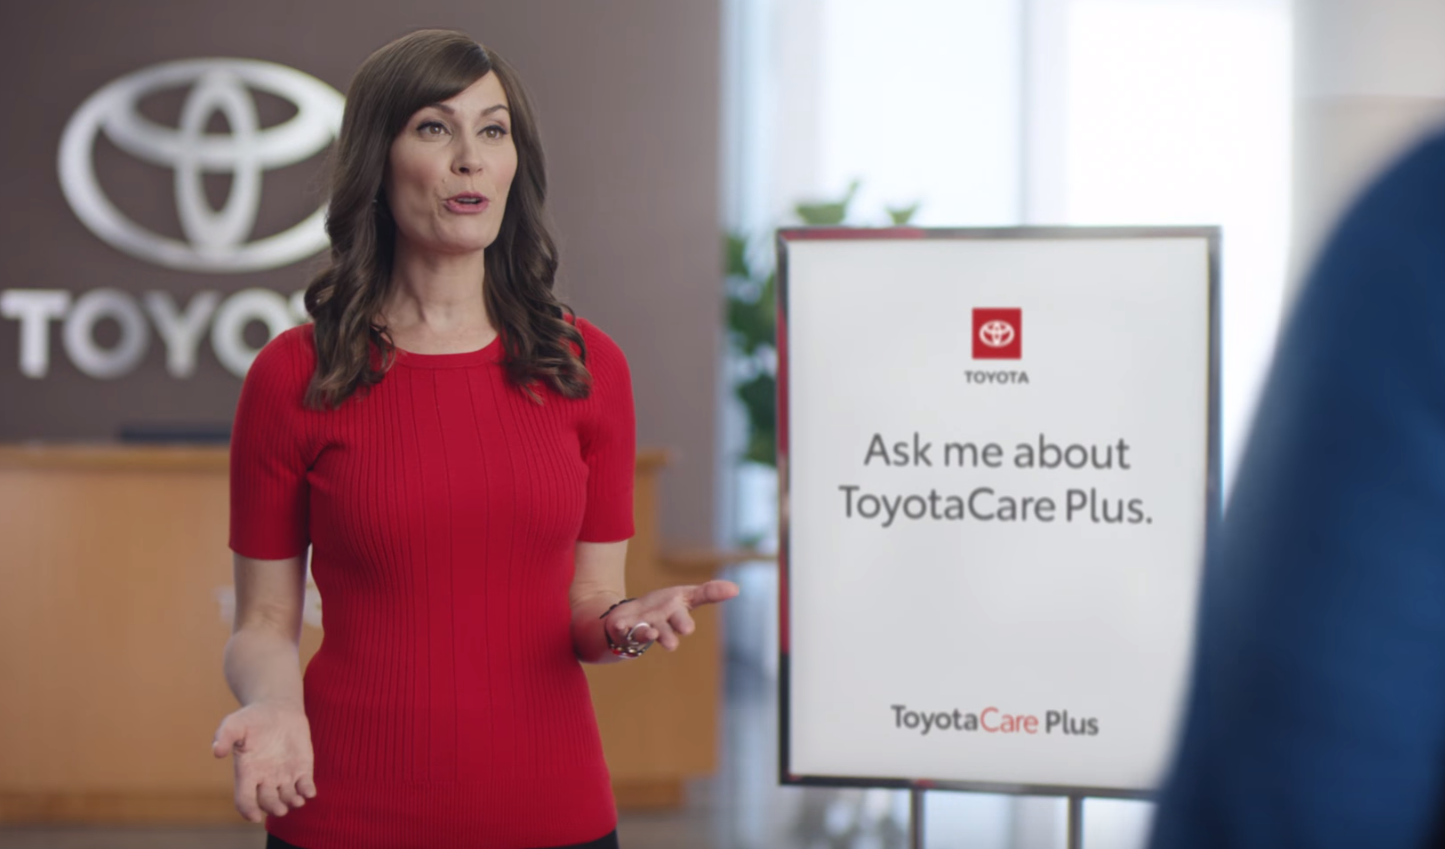 Toyota Jan Touts ToyotaCare Plus and SightLine Wipers in New Commercials - The News Wheel